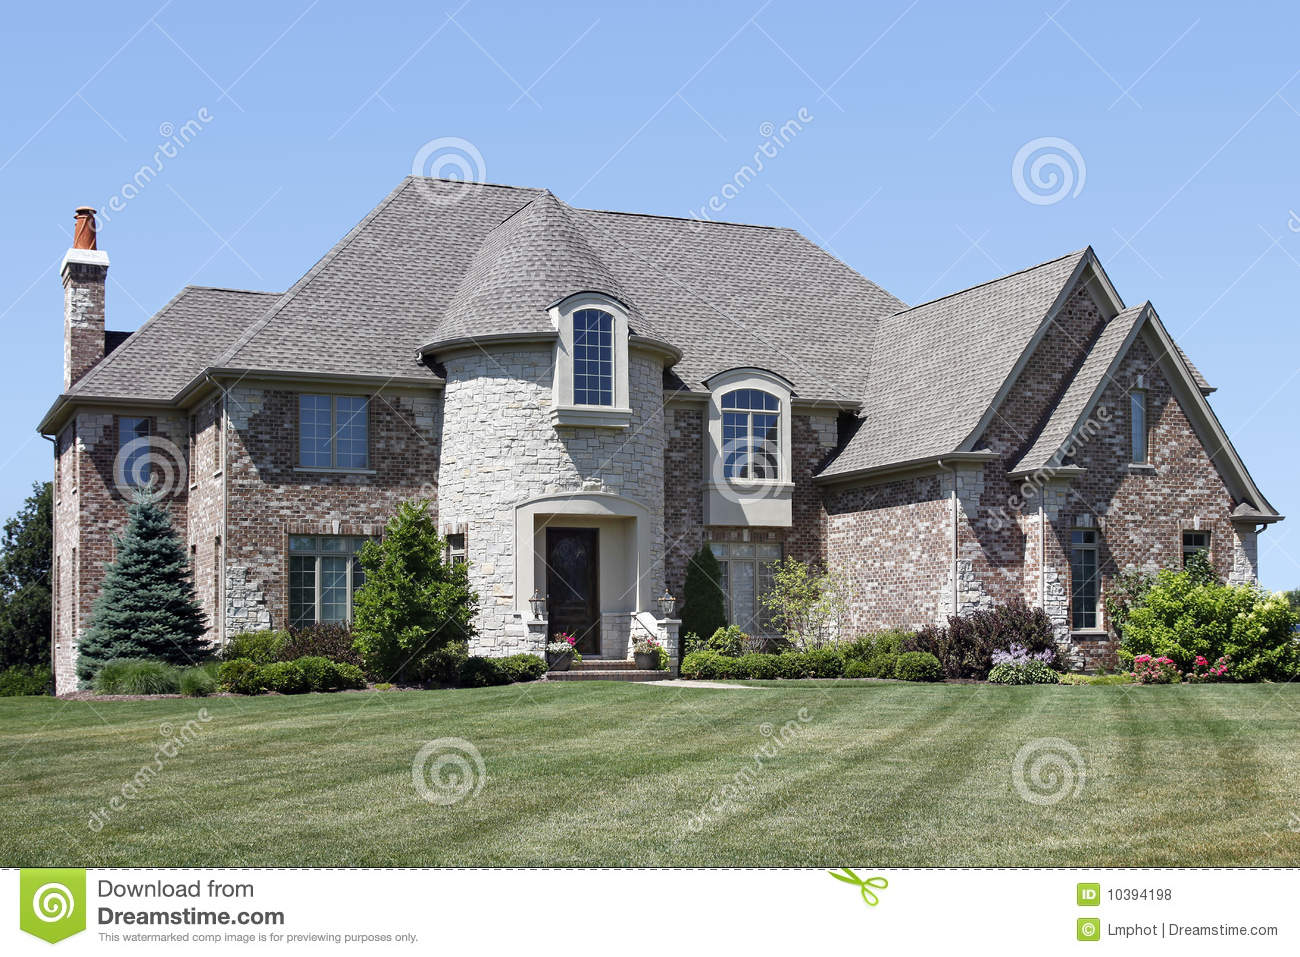 Luxury Brick Home With Turret Royalty Free Stock Photos